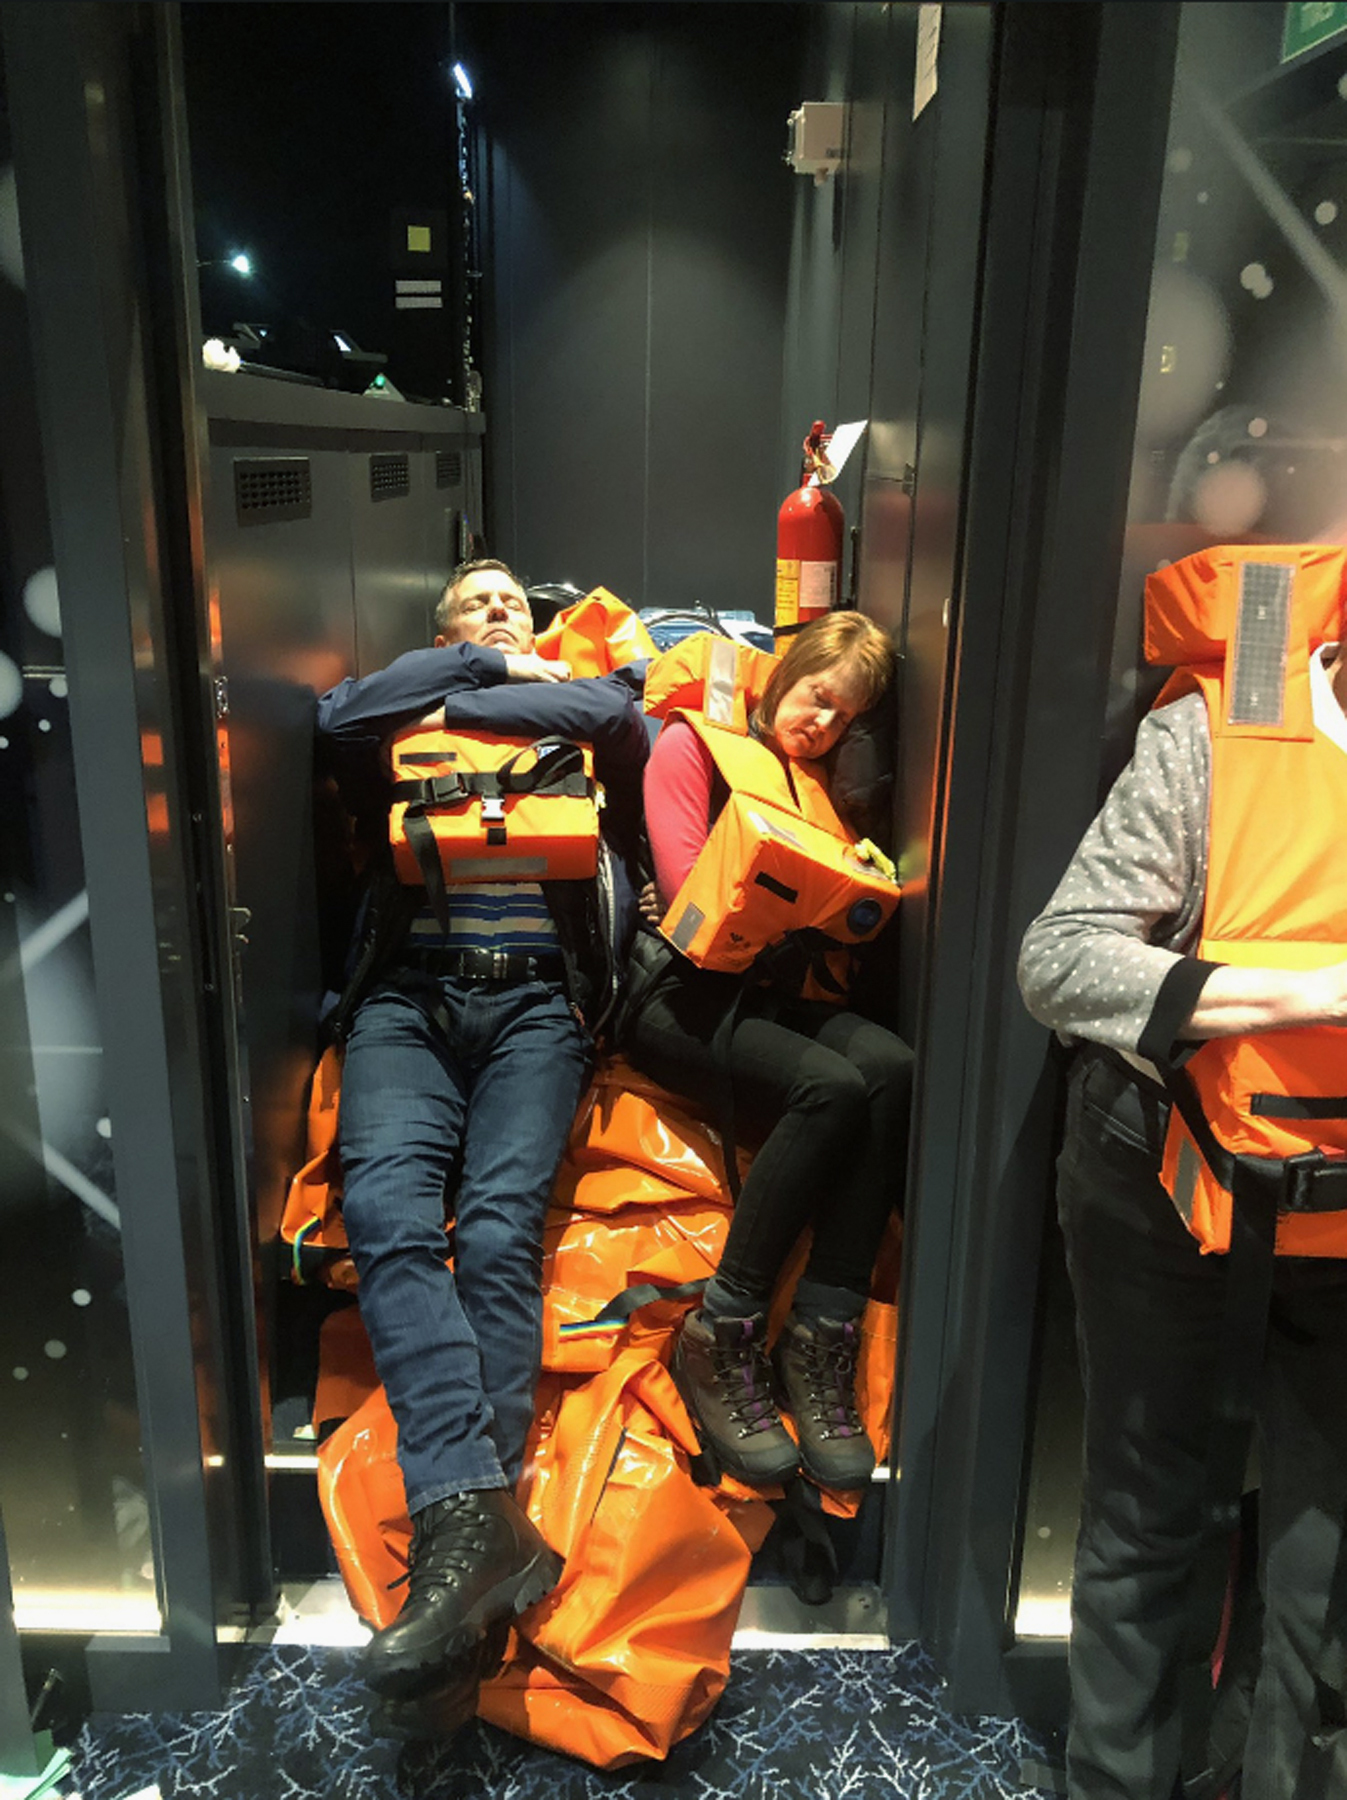 This photo provided by Alexus Sheppard shows passengers on board the Viking Sky, waiting to be evacuated, off the coast of Norway on Saturday, March 23, 2019. Rescue workers off Norway's western coast rushed to evacuate 1,300 passengers and crew from a disabled cruise ship by helicopter on Saturday, winching them one-by-one to safety as heaving waves tossed the ship from side to side and high winds battered the operation. (Alexus Sheppard via AP)